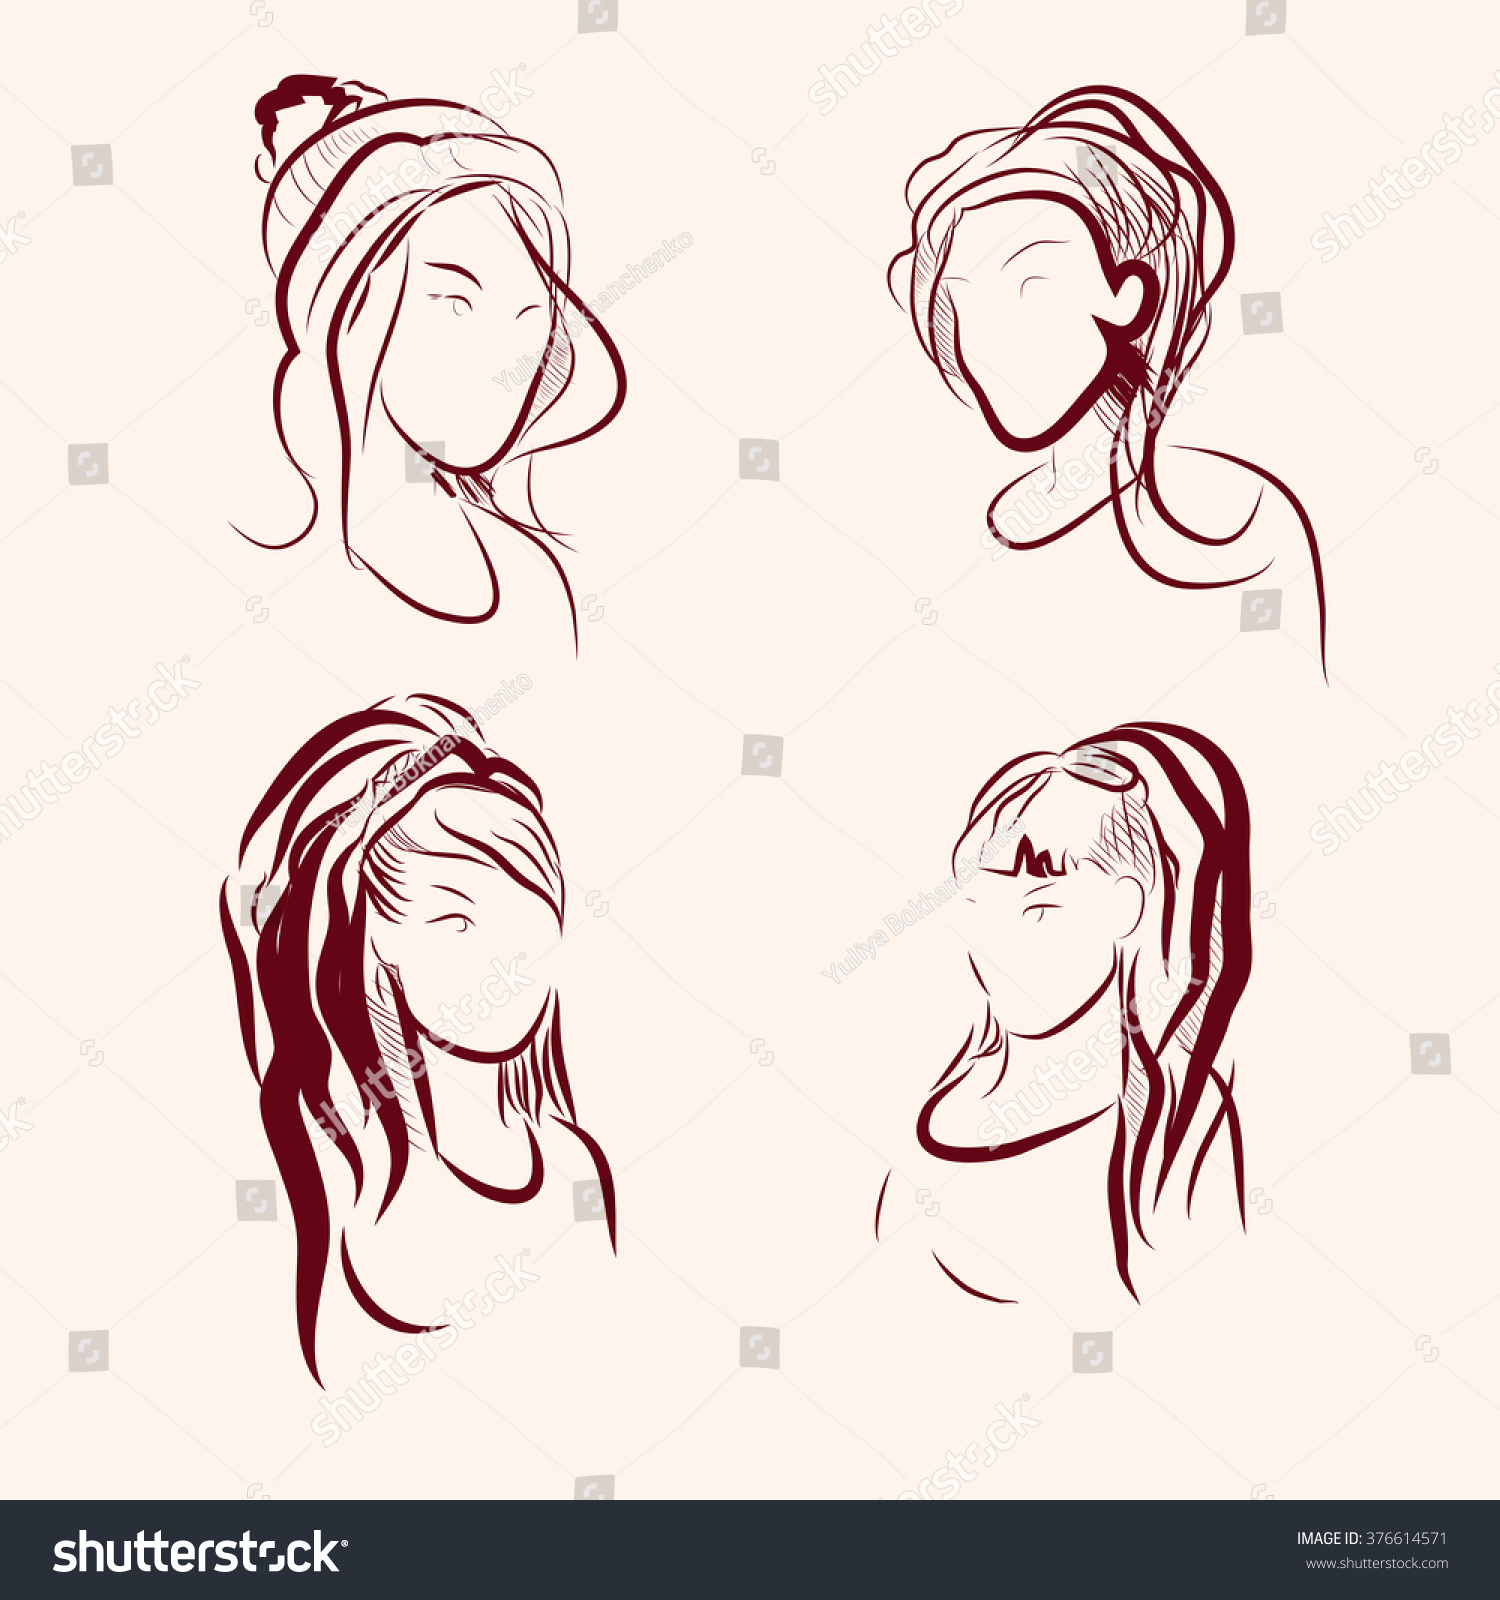 Sketch of womens hairstyles